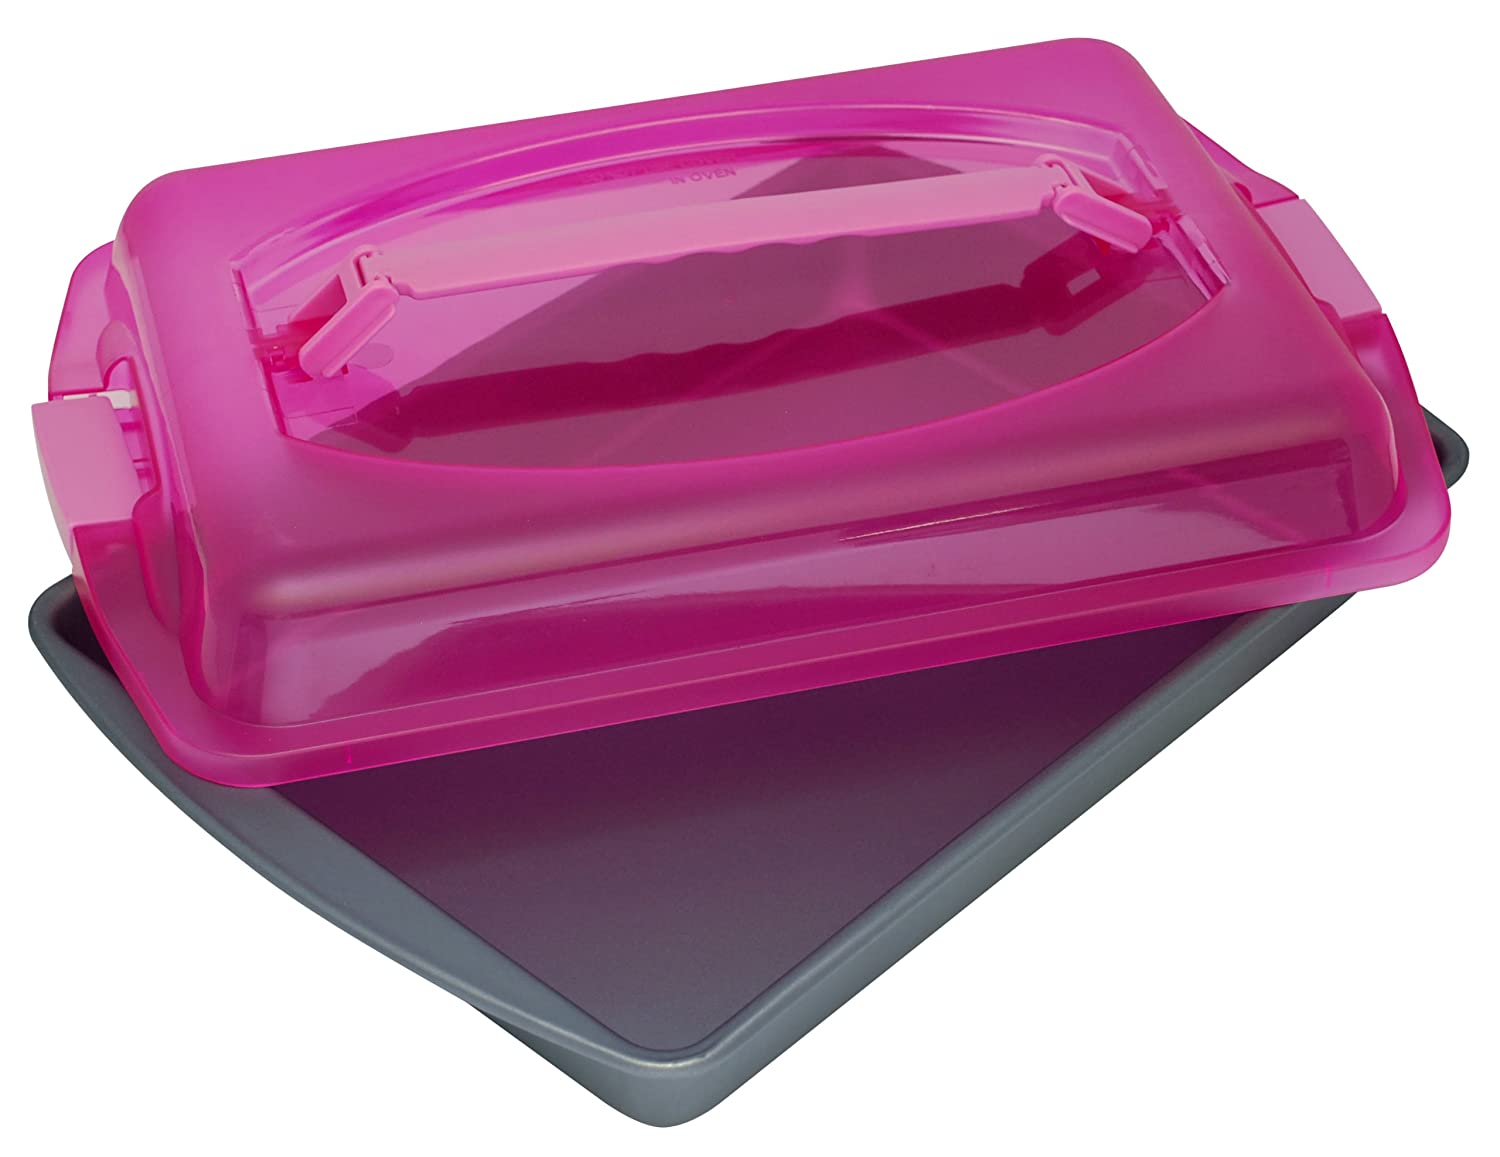 OvenStuff Non-Stick Cake Pan with Cover and Handles, Small HGC18UH-KMN